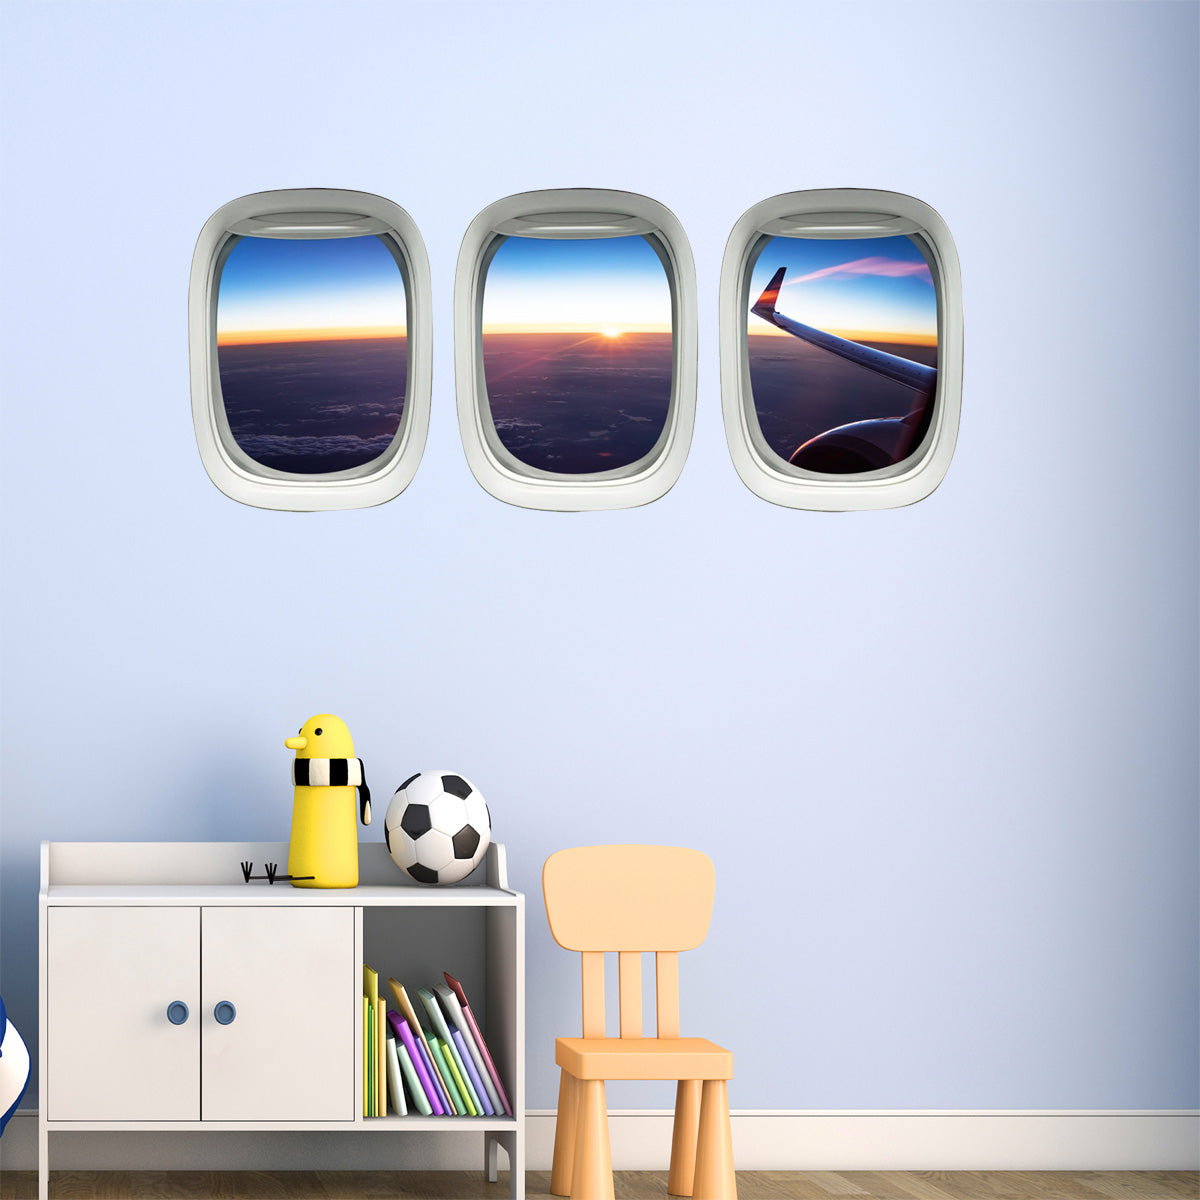 Aviation Wall Decal, Airplane Wing Stickers - Aircraft Wall Art Decor -PPW39 - VWAQ Vinyl Wall Art Quotes and Prints